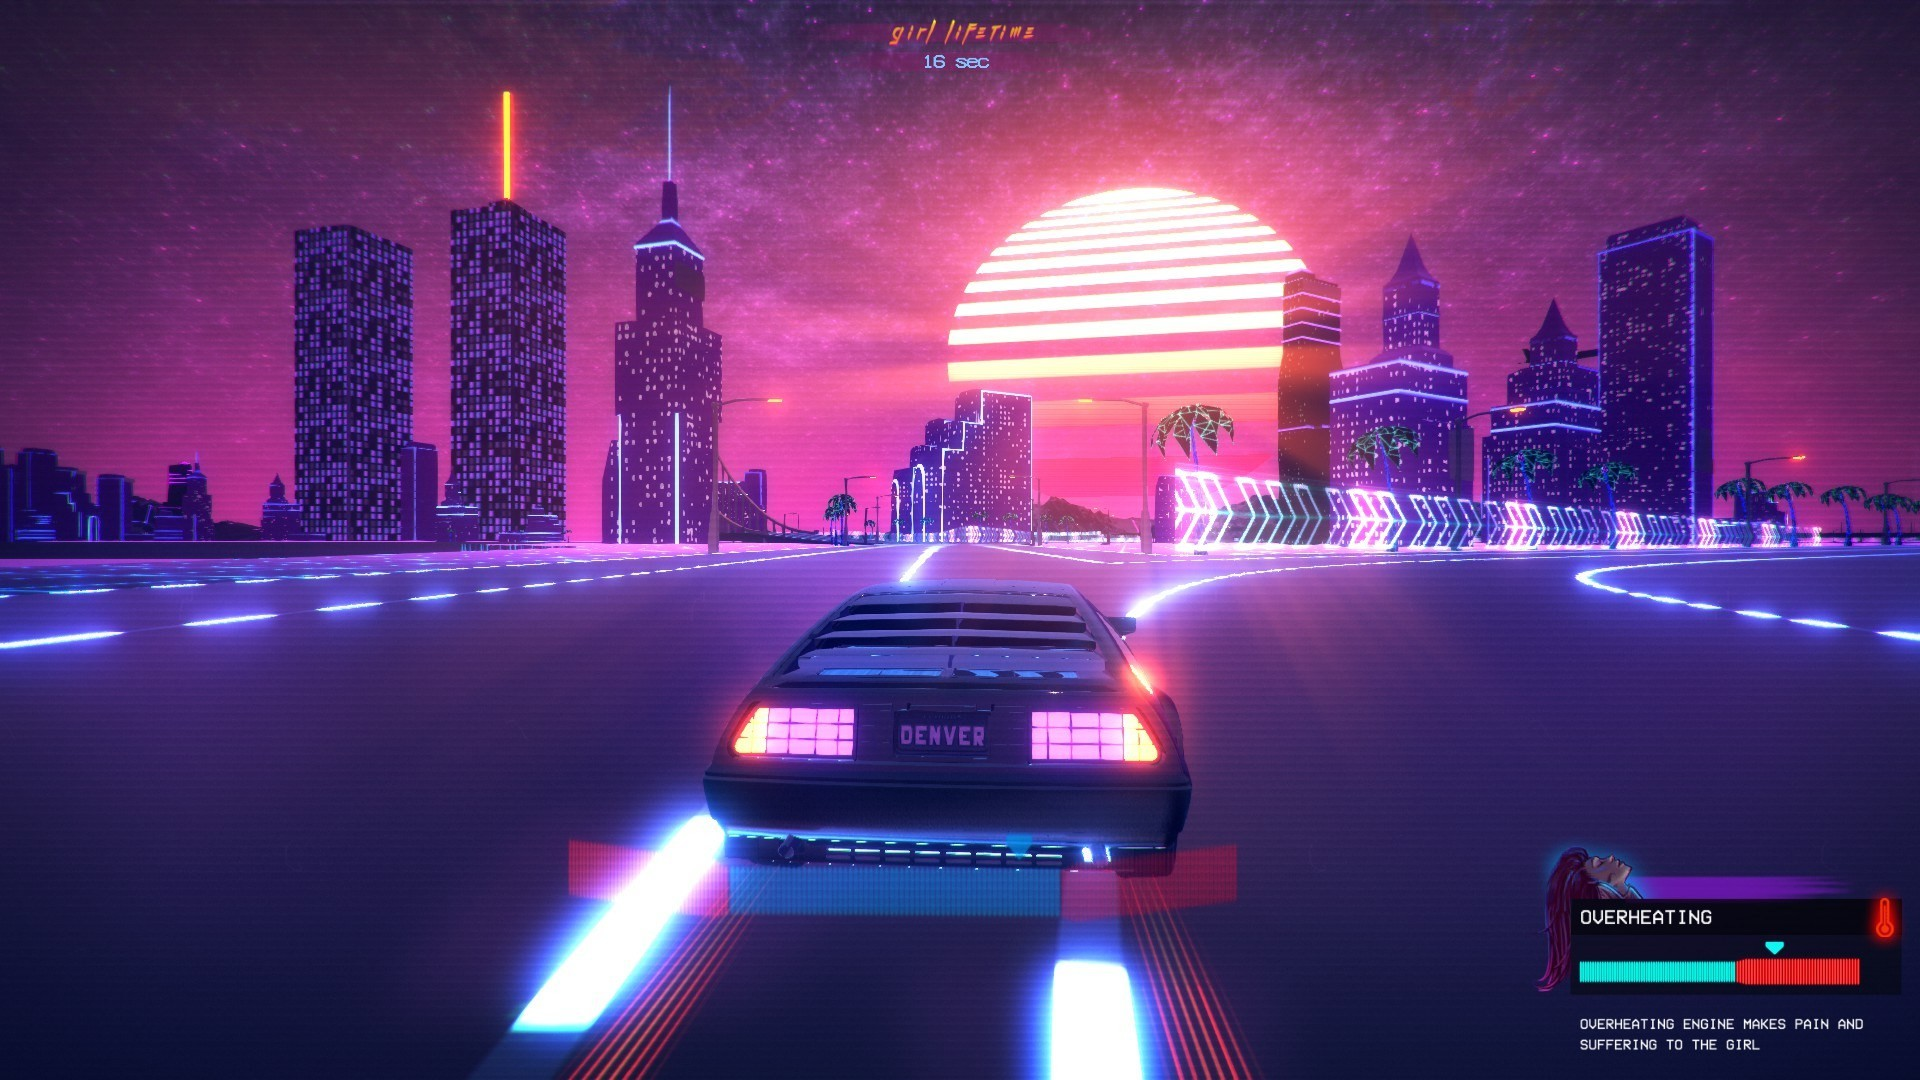 1920x1080 Outdrive-Review-Screenshot-Wallpaper-Neon-City.jpg (1920×1080) | Neon Wave  | Pinterest | Dream city